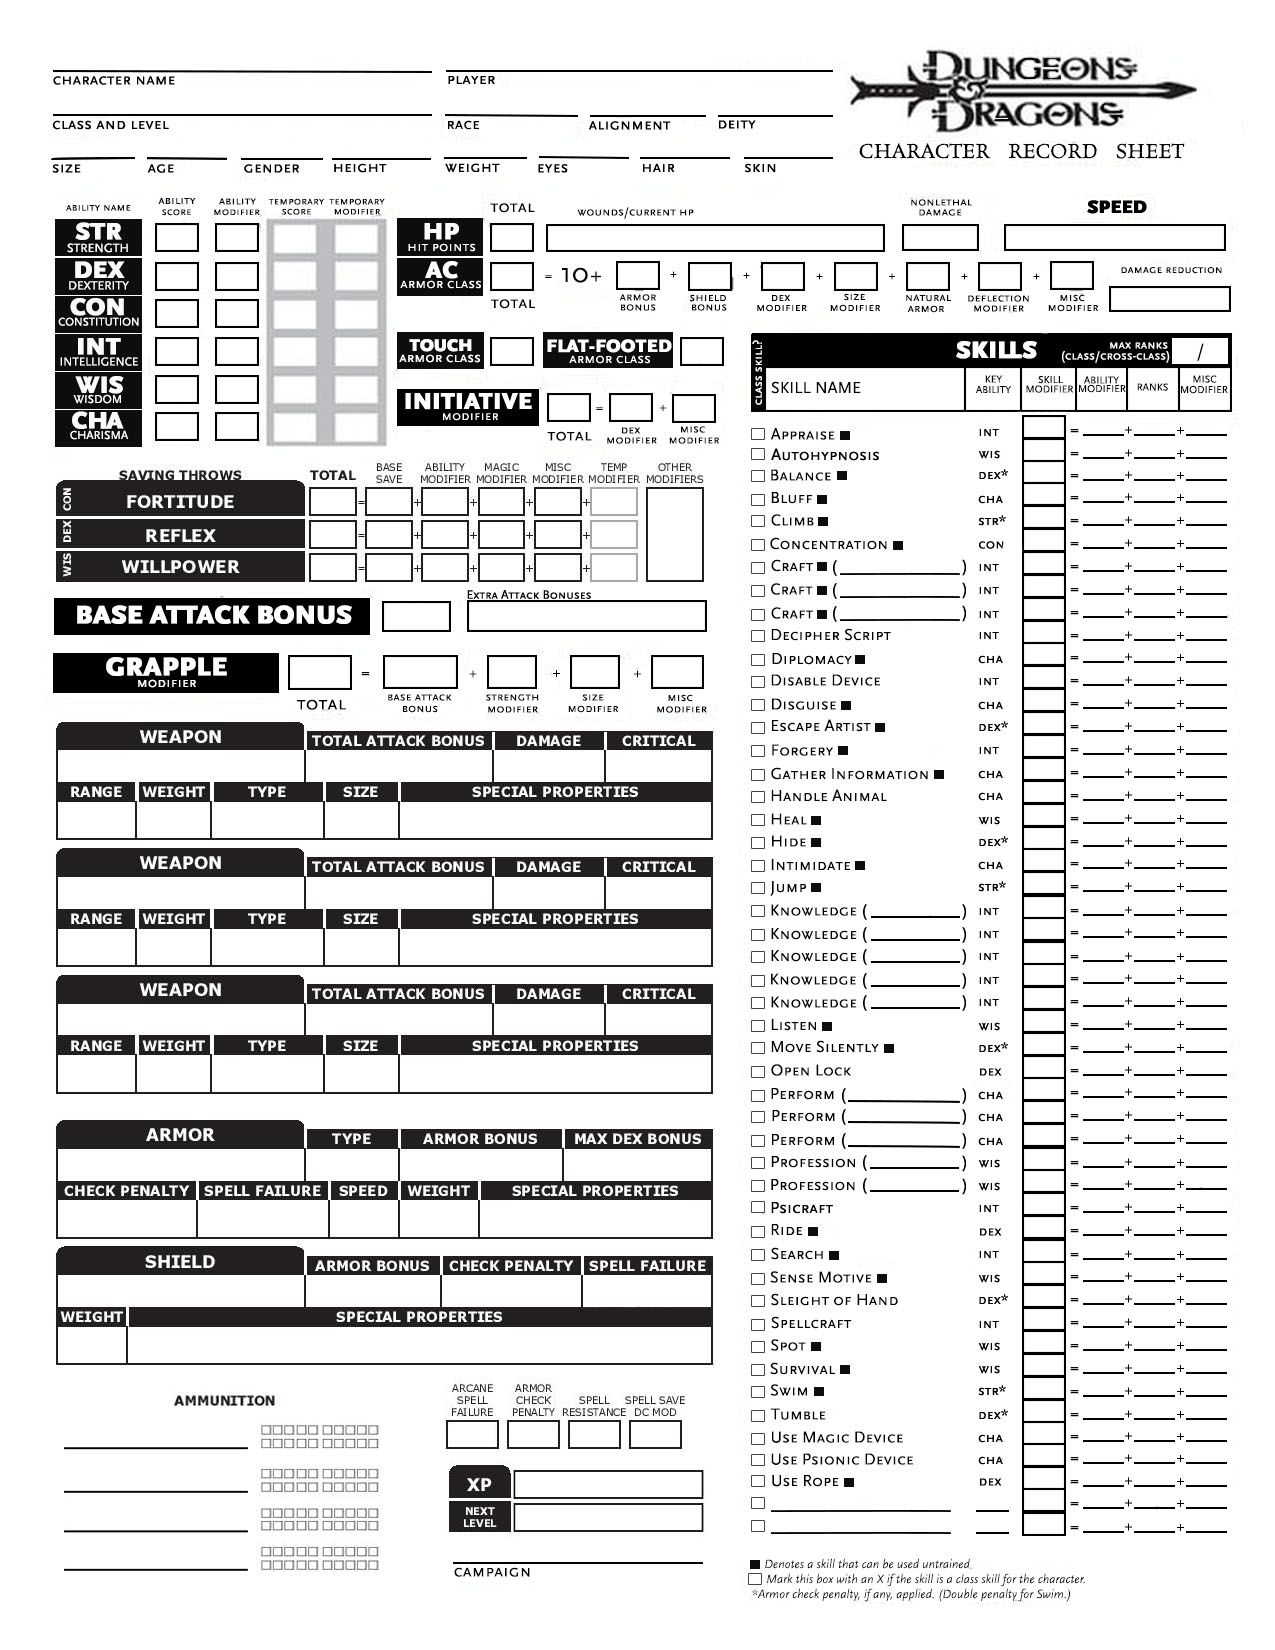 photo relating to 3.5e Character Sheet Printable titled This is a personalized temperament sheet I created for 3.5e of dd